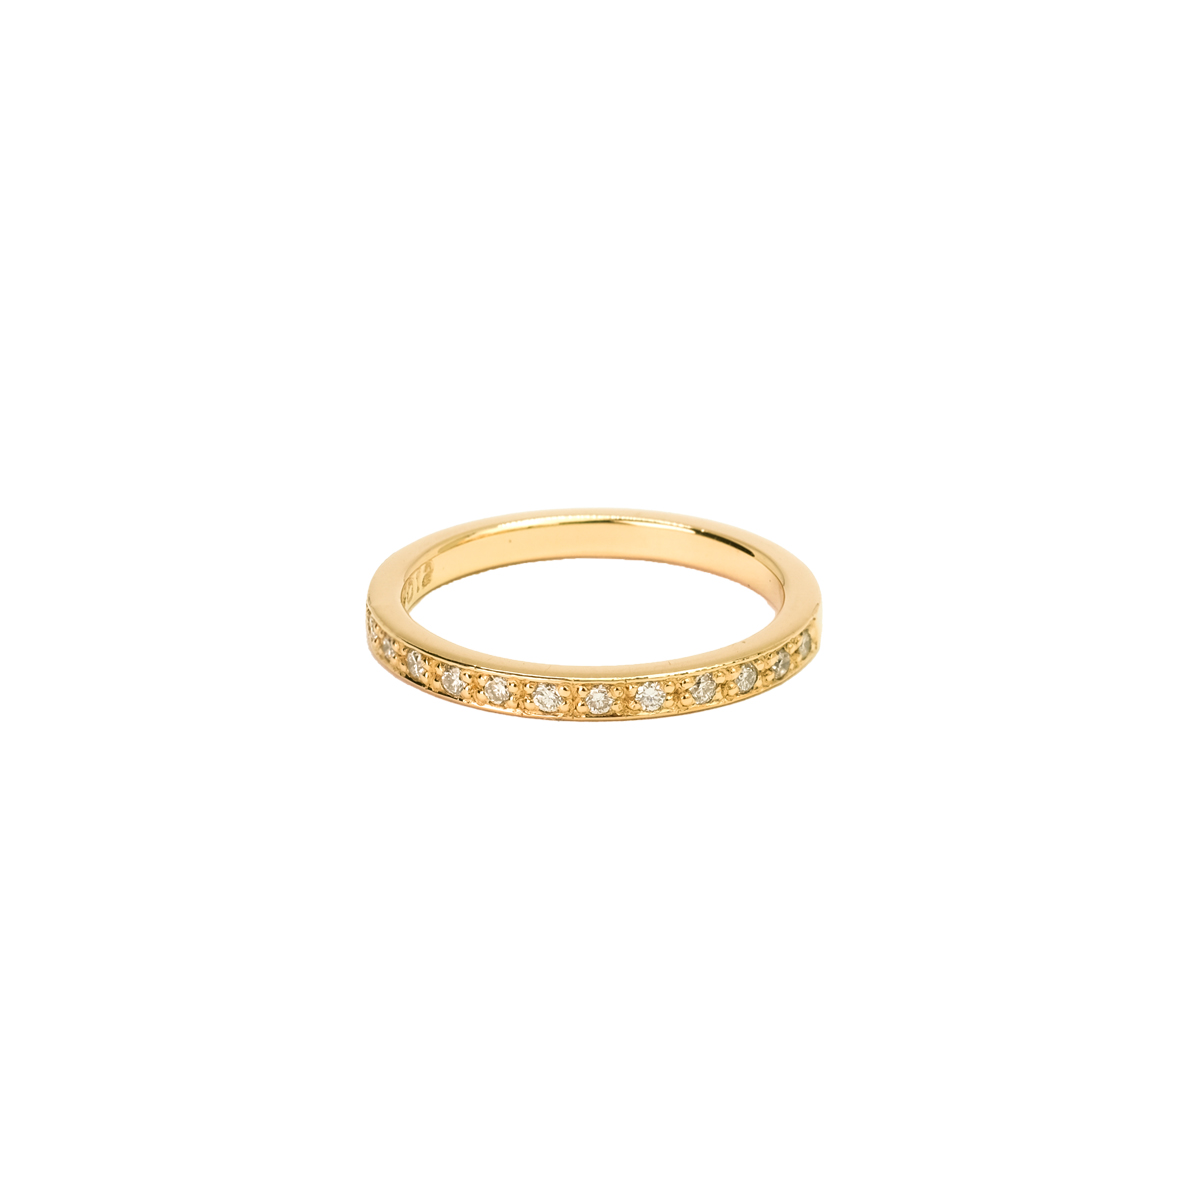 18K DIAMOND BAND RING in the group RINGS at EMMA ISRAELSSON (ring086)